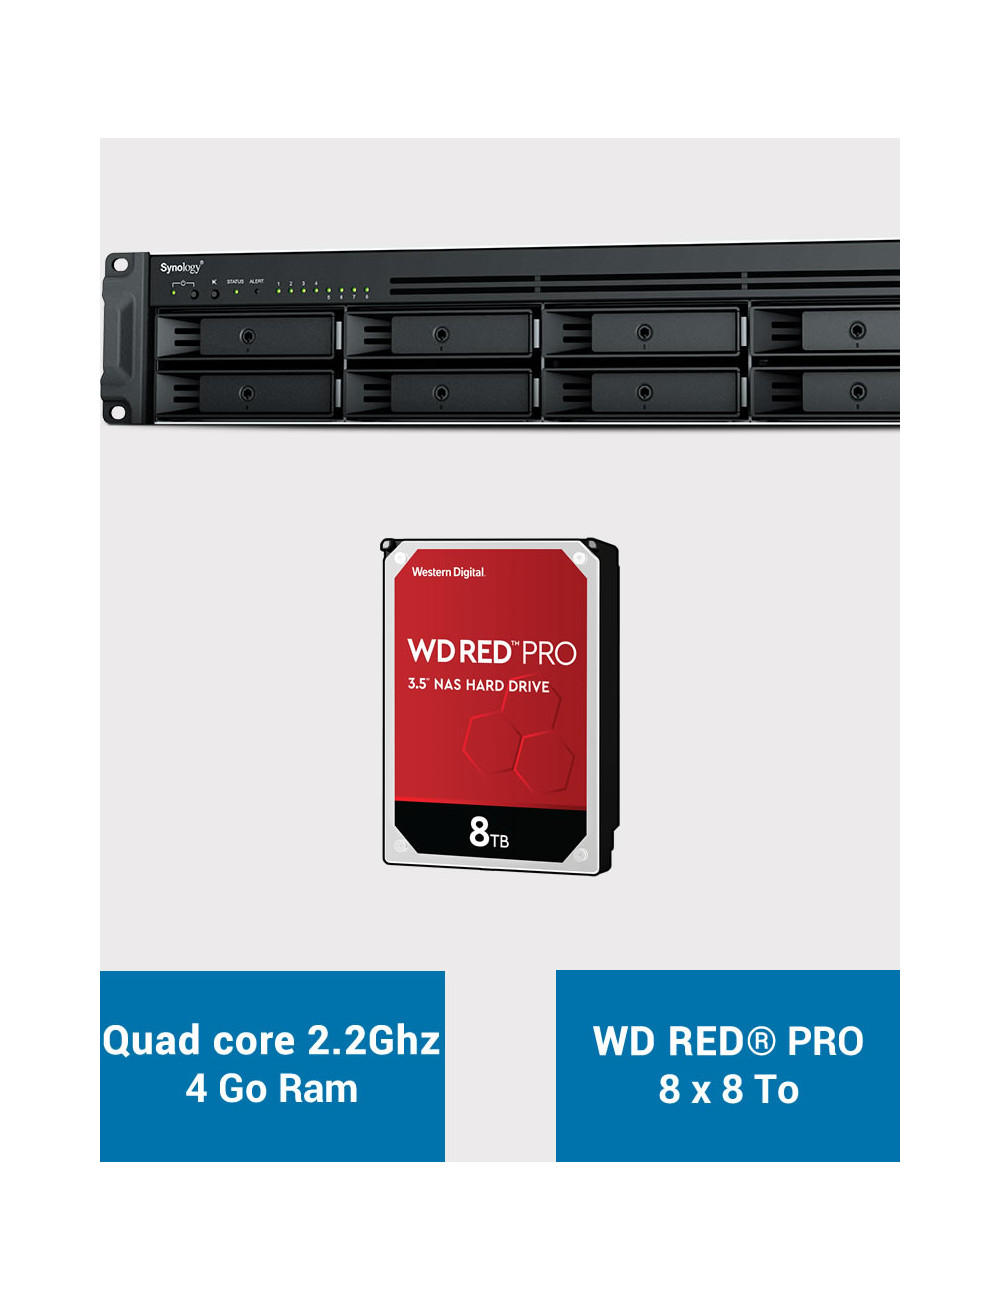 Synology RS1221+ Serveur NAS Rack WD RED PRO 64To (8x8To)